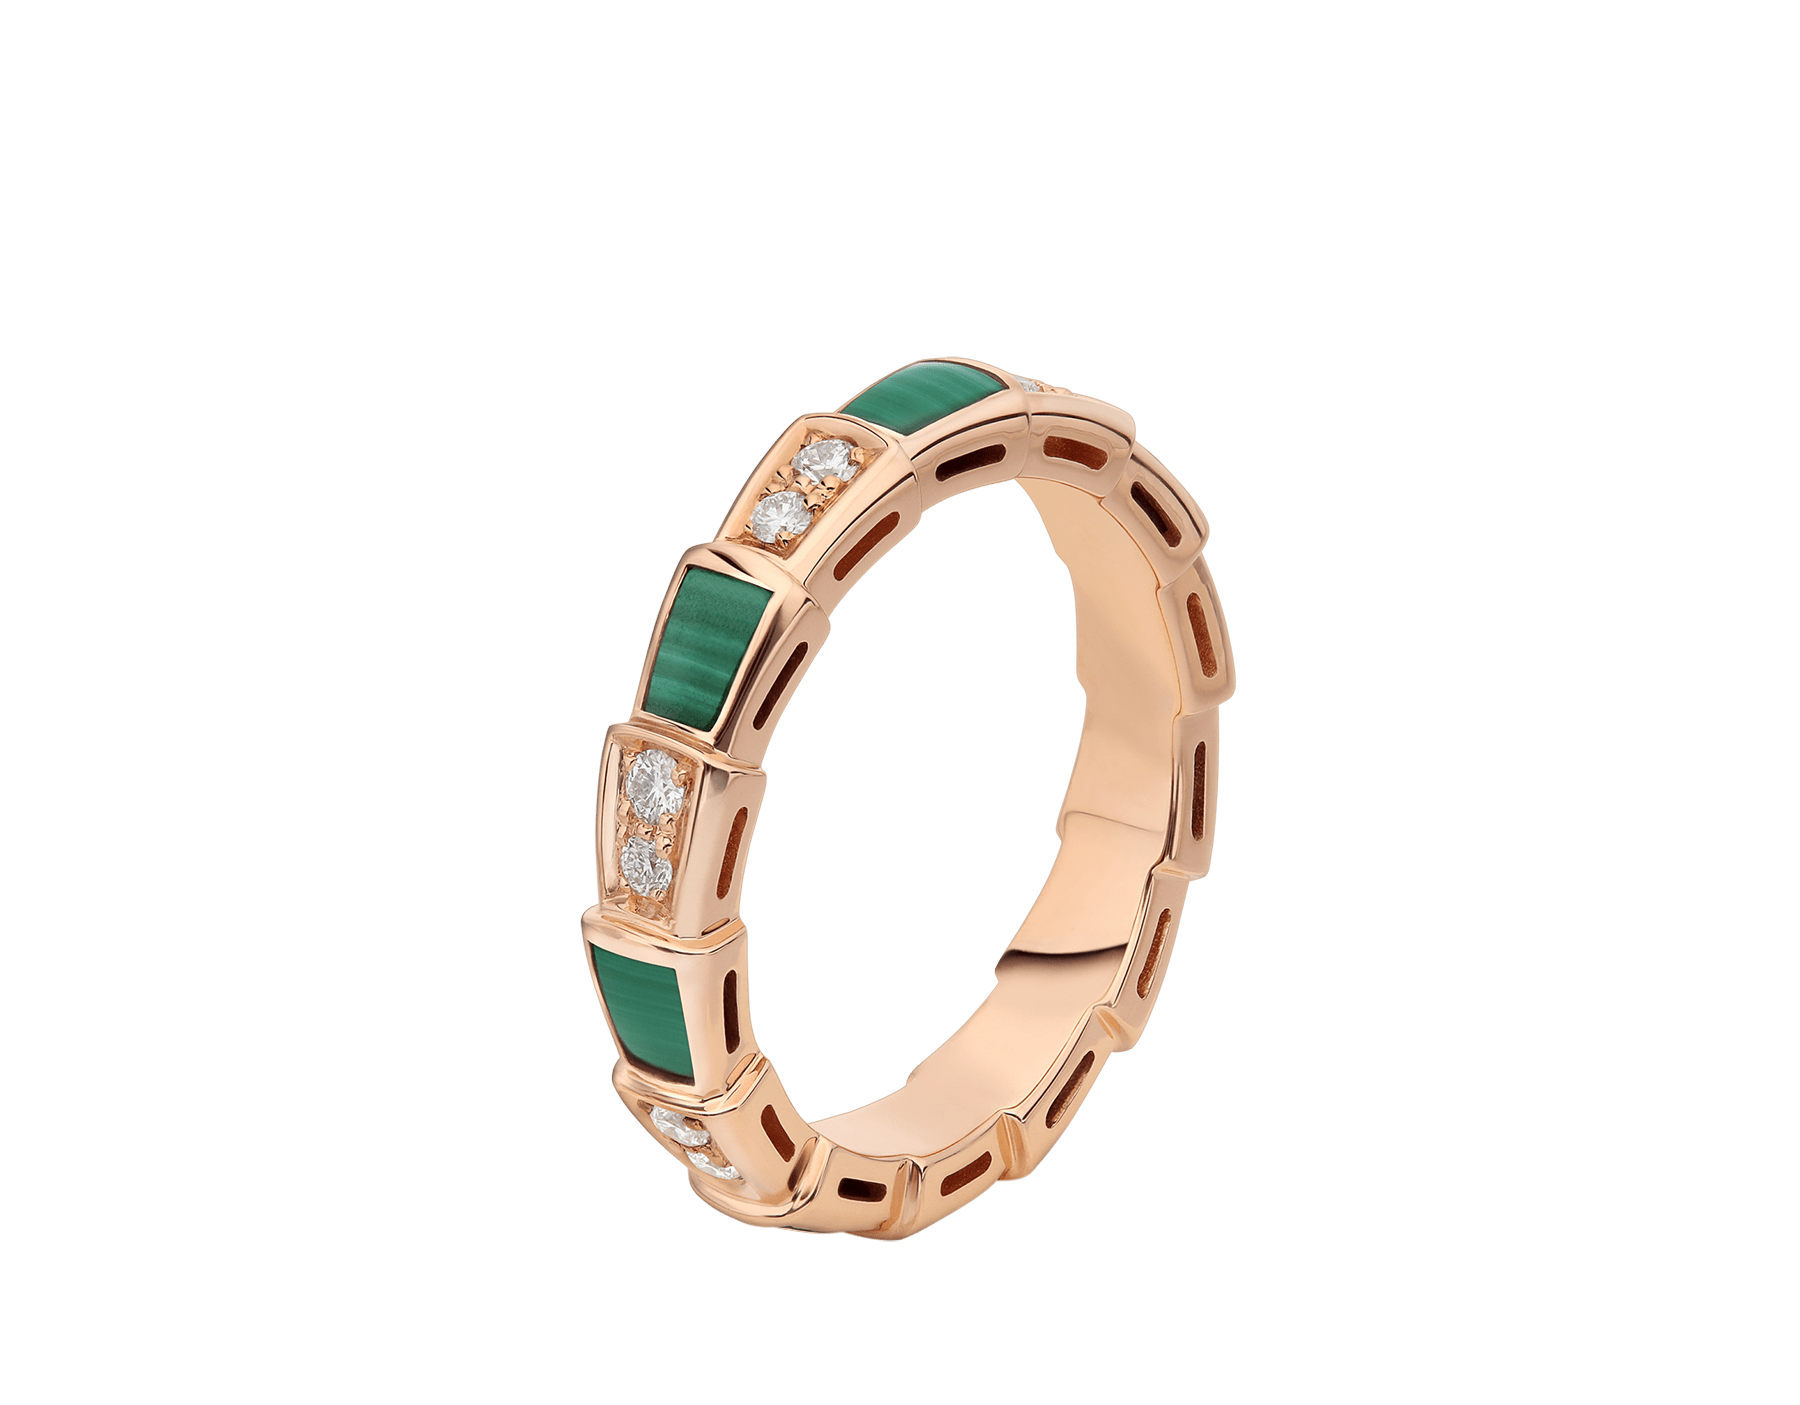 Serpenti 18 kt rose gold thin ring set with malachite elements and pavé diamonds (0.20 ct) AN858752 image 1